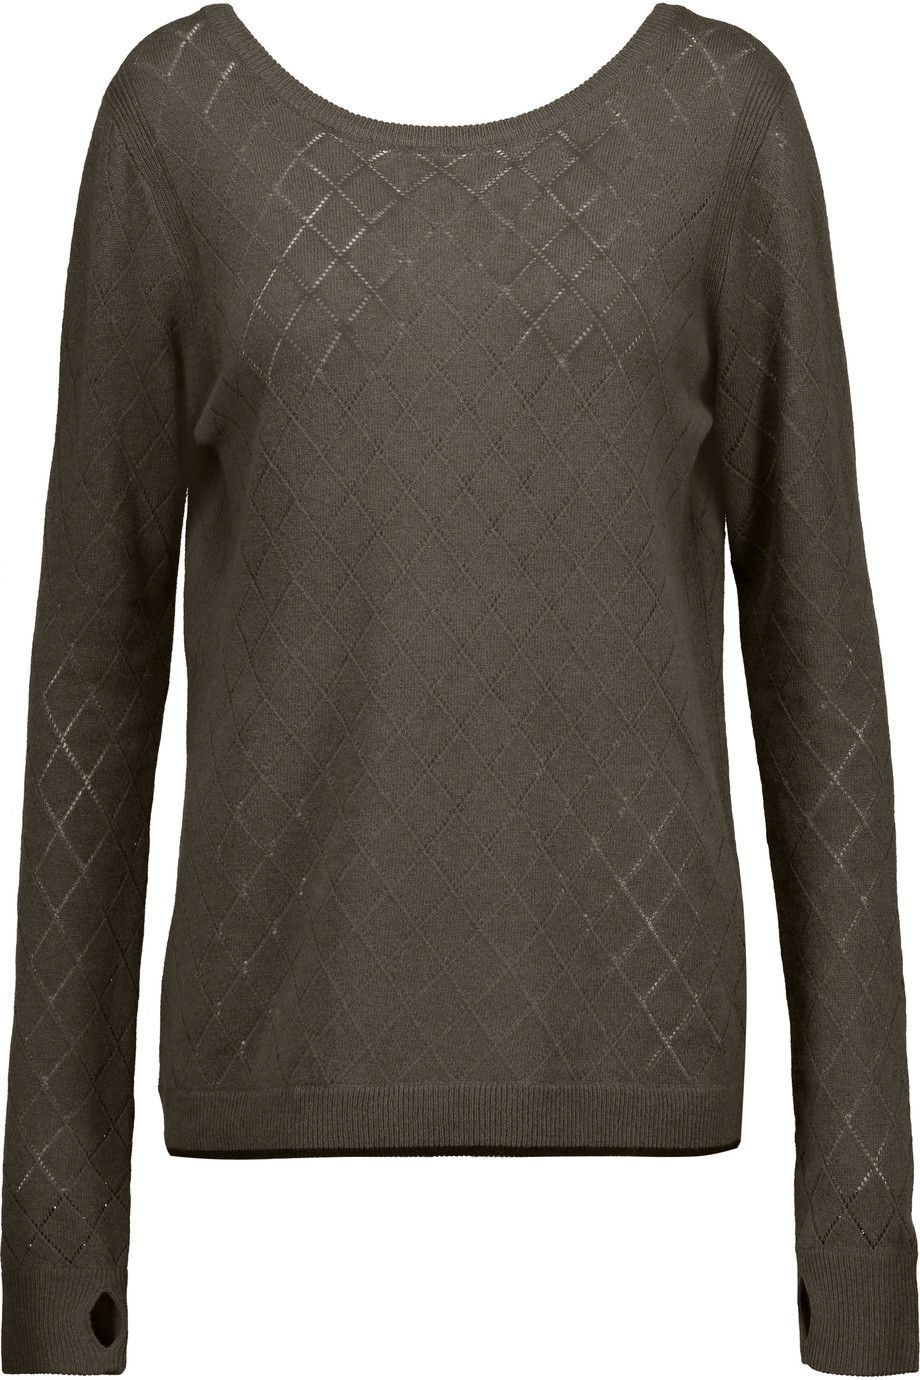 L'AGENCE Agustina Open Knit-Trimmed Stretch-Knit Sweater. #lagence #cloth #sweater